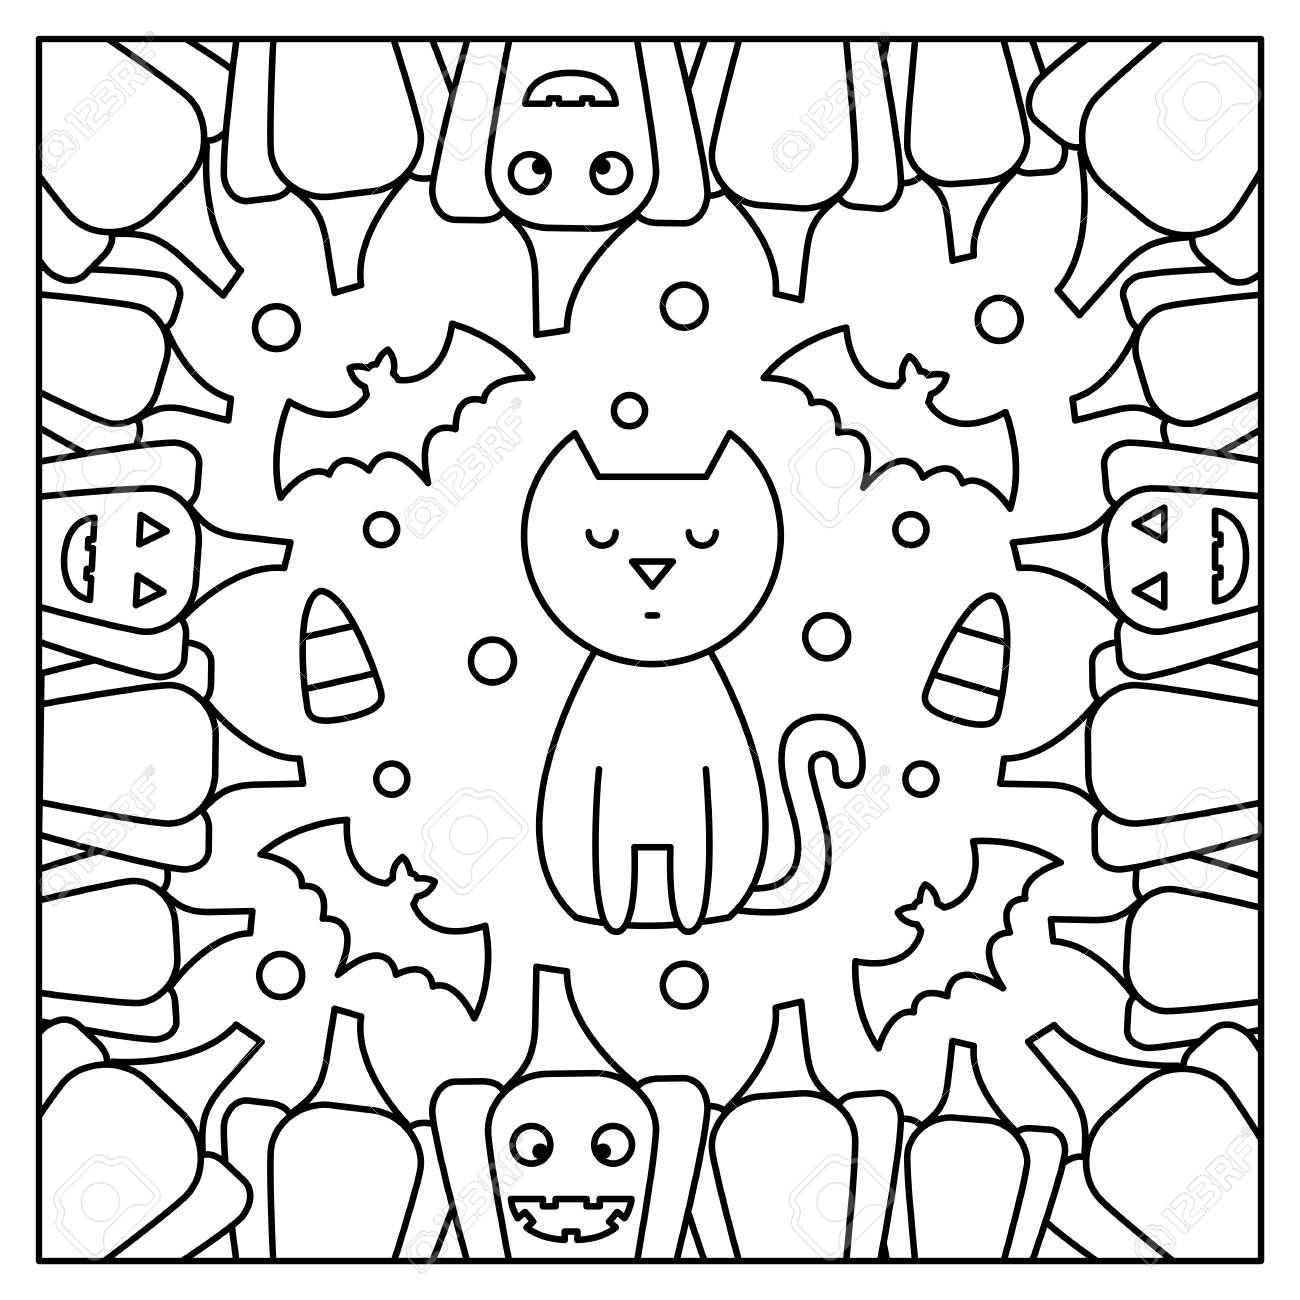 Cat and pumpkins. Coloring page. Black and white vector illustration